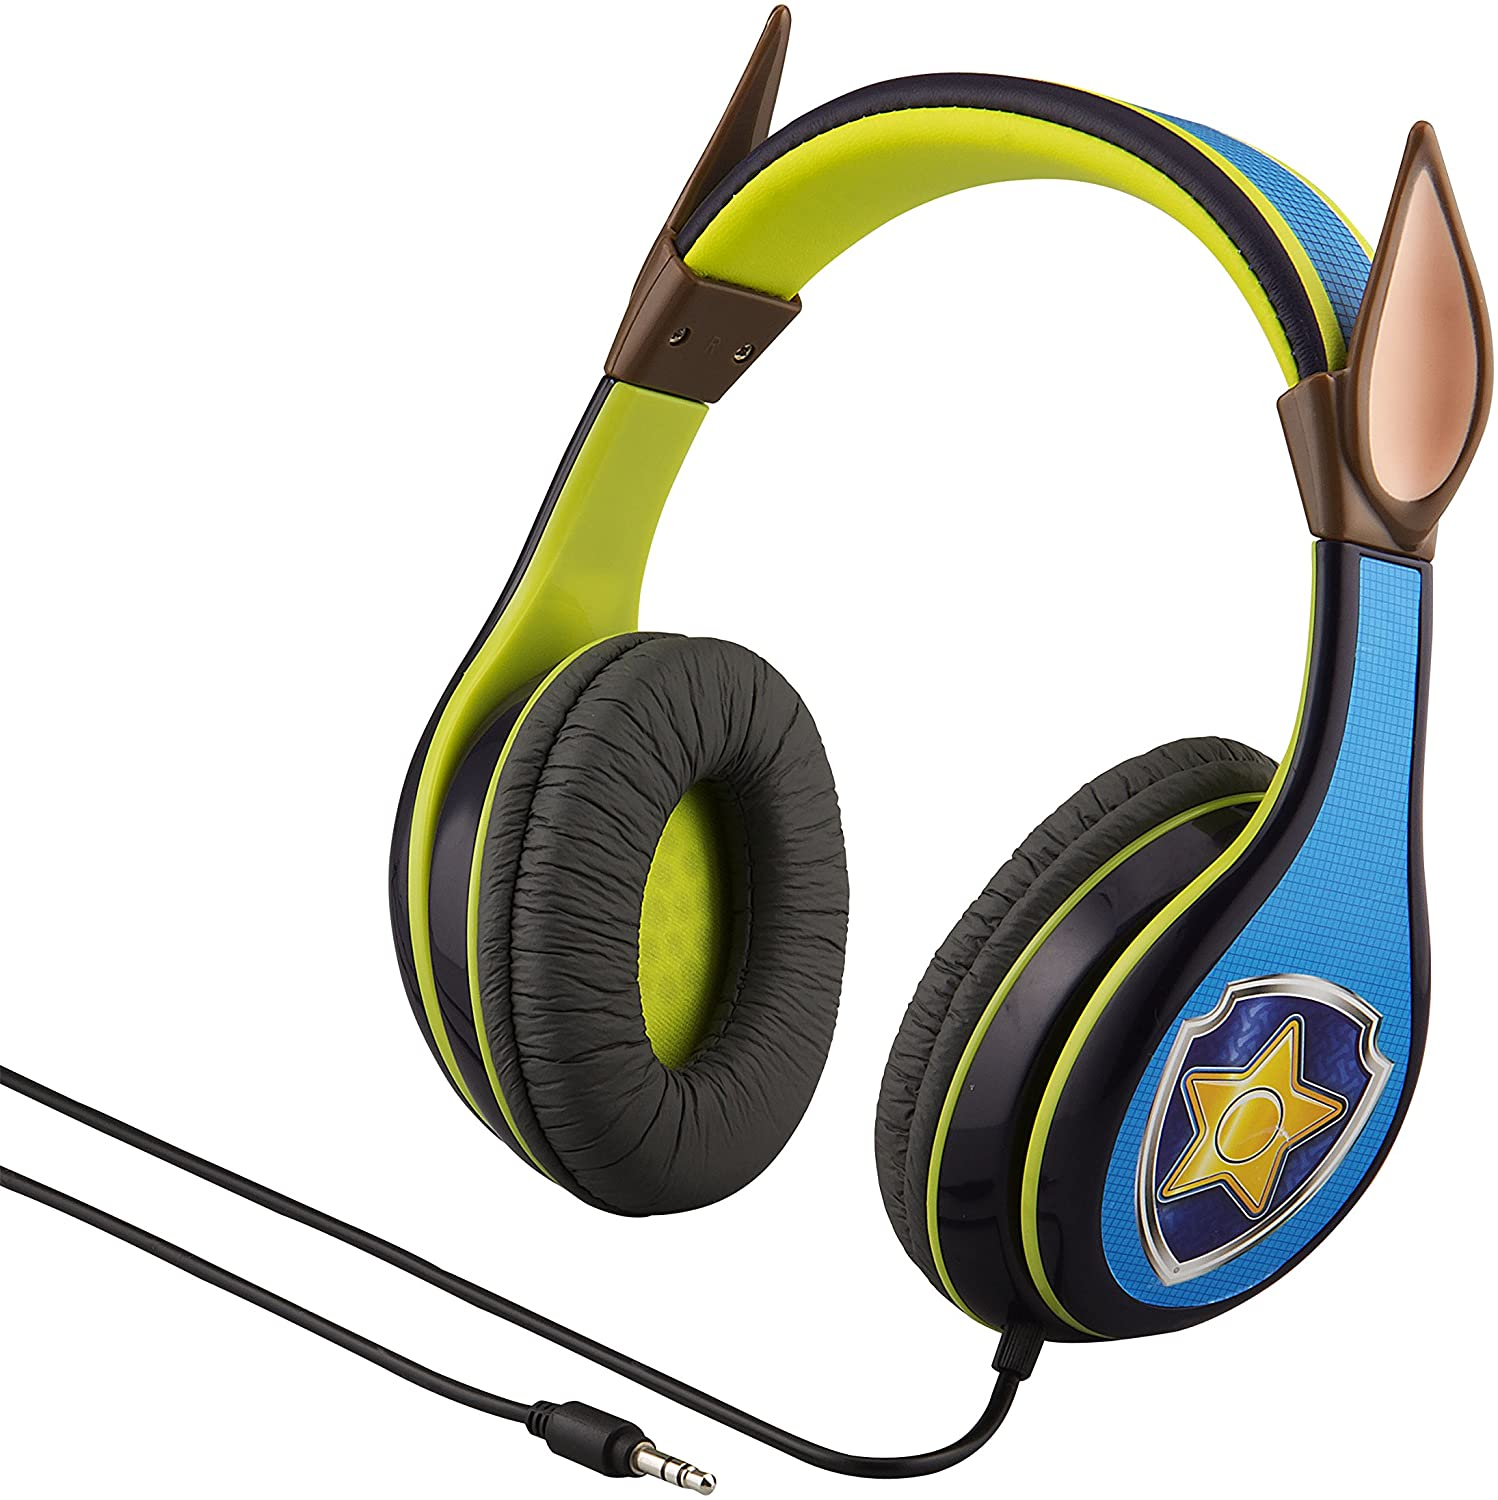 Paw Patrol Chase Kids Headphones, Adjustable Headband, Stereo Sound, 3.5Mm Jack, Wired Headphones for Kids, Tangle Free, Volume Control, Foldable Over Ear for School Home Travel